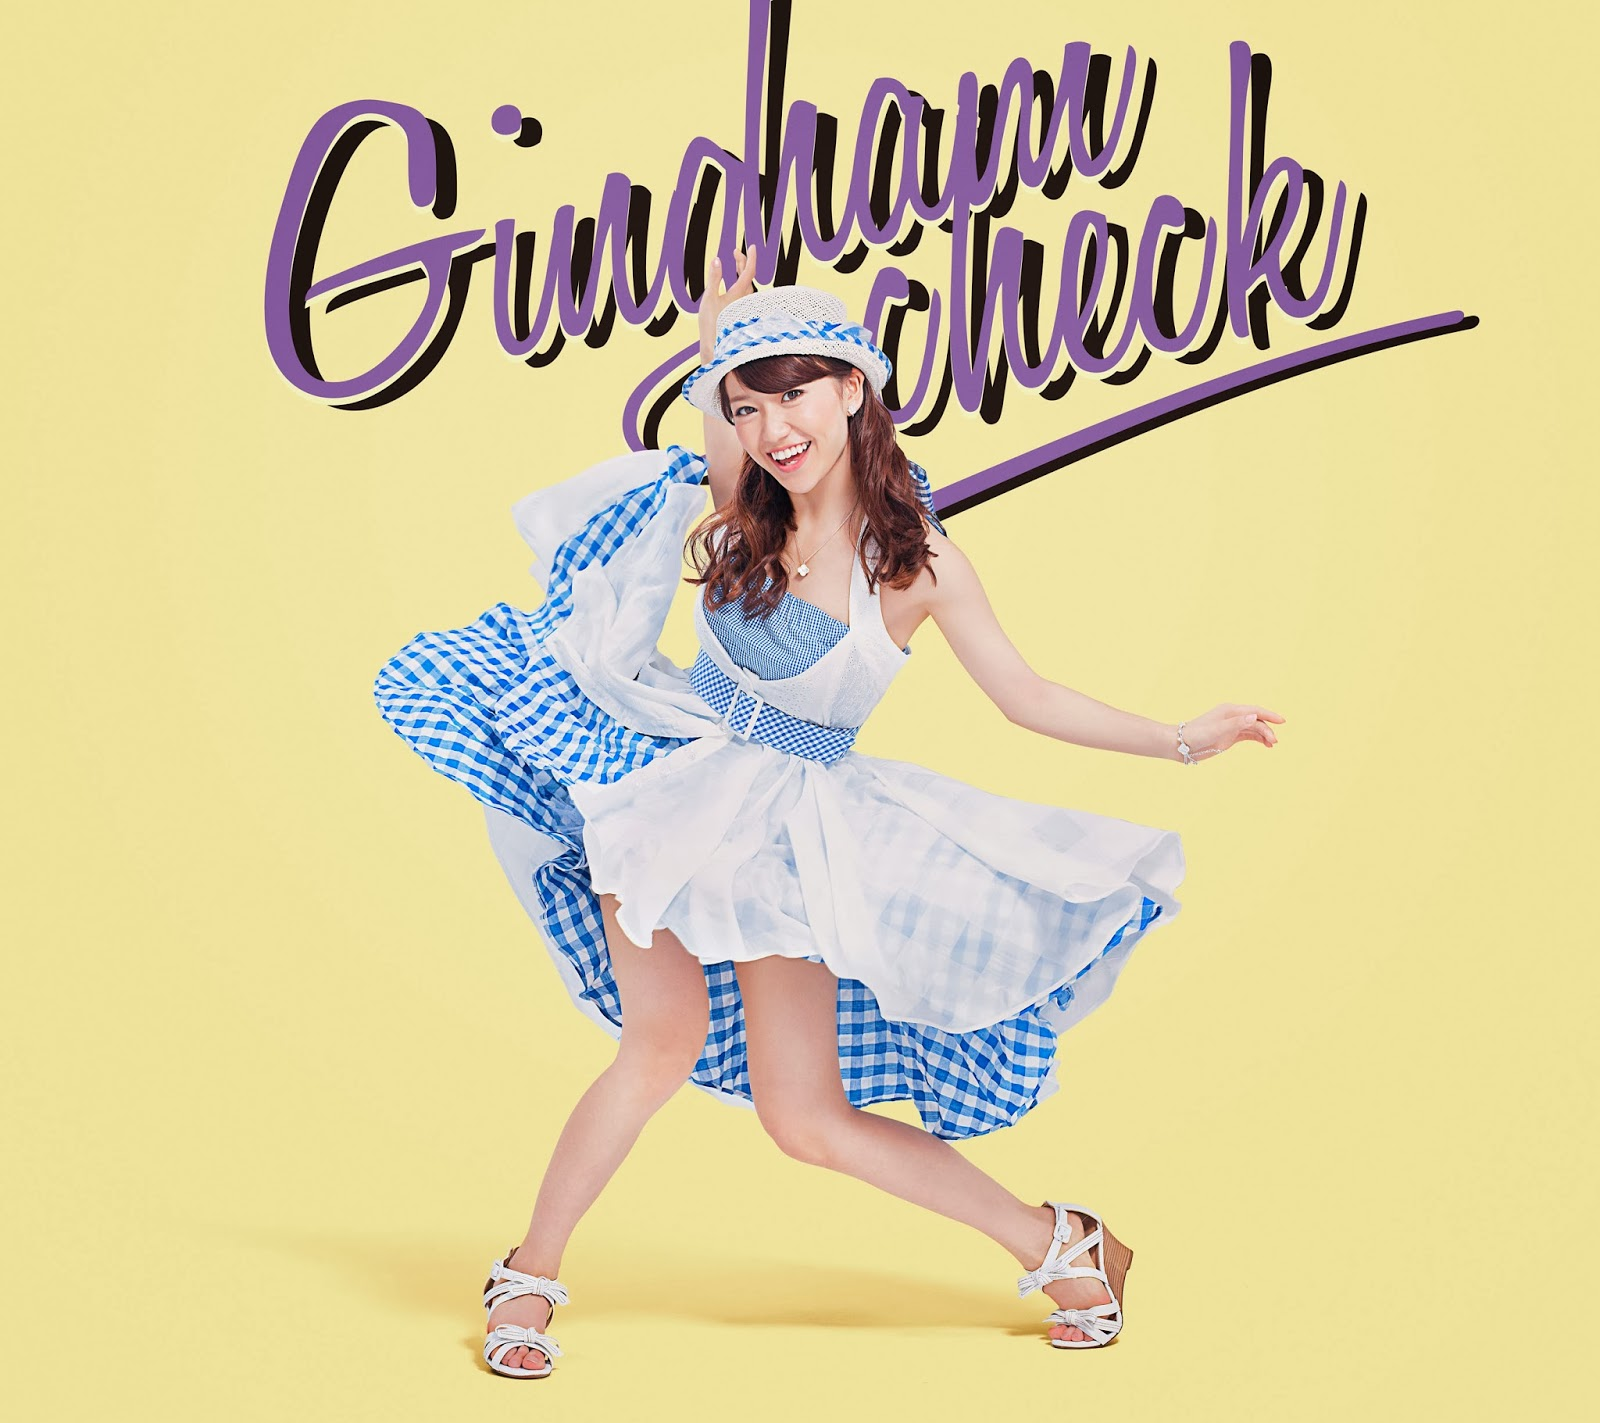 gingham_check_akb48_limited_A.jpg (1600×1423)